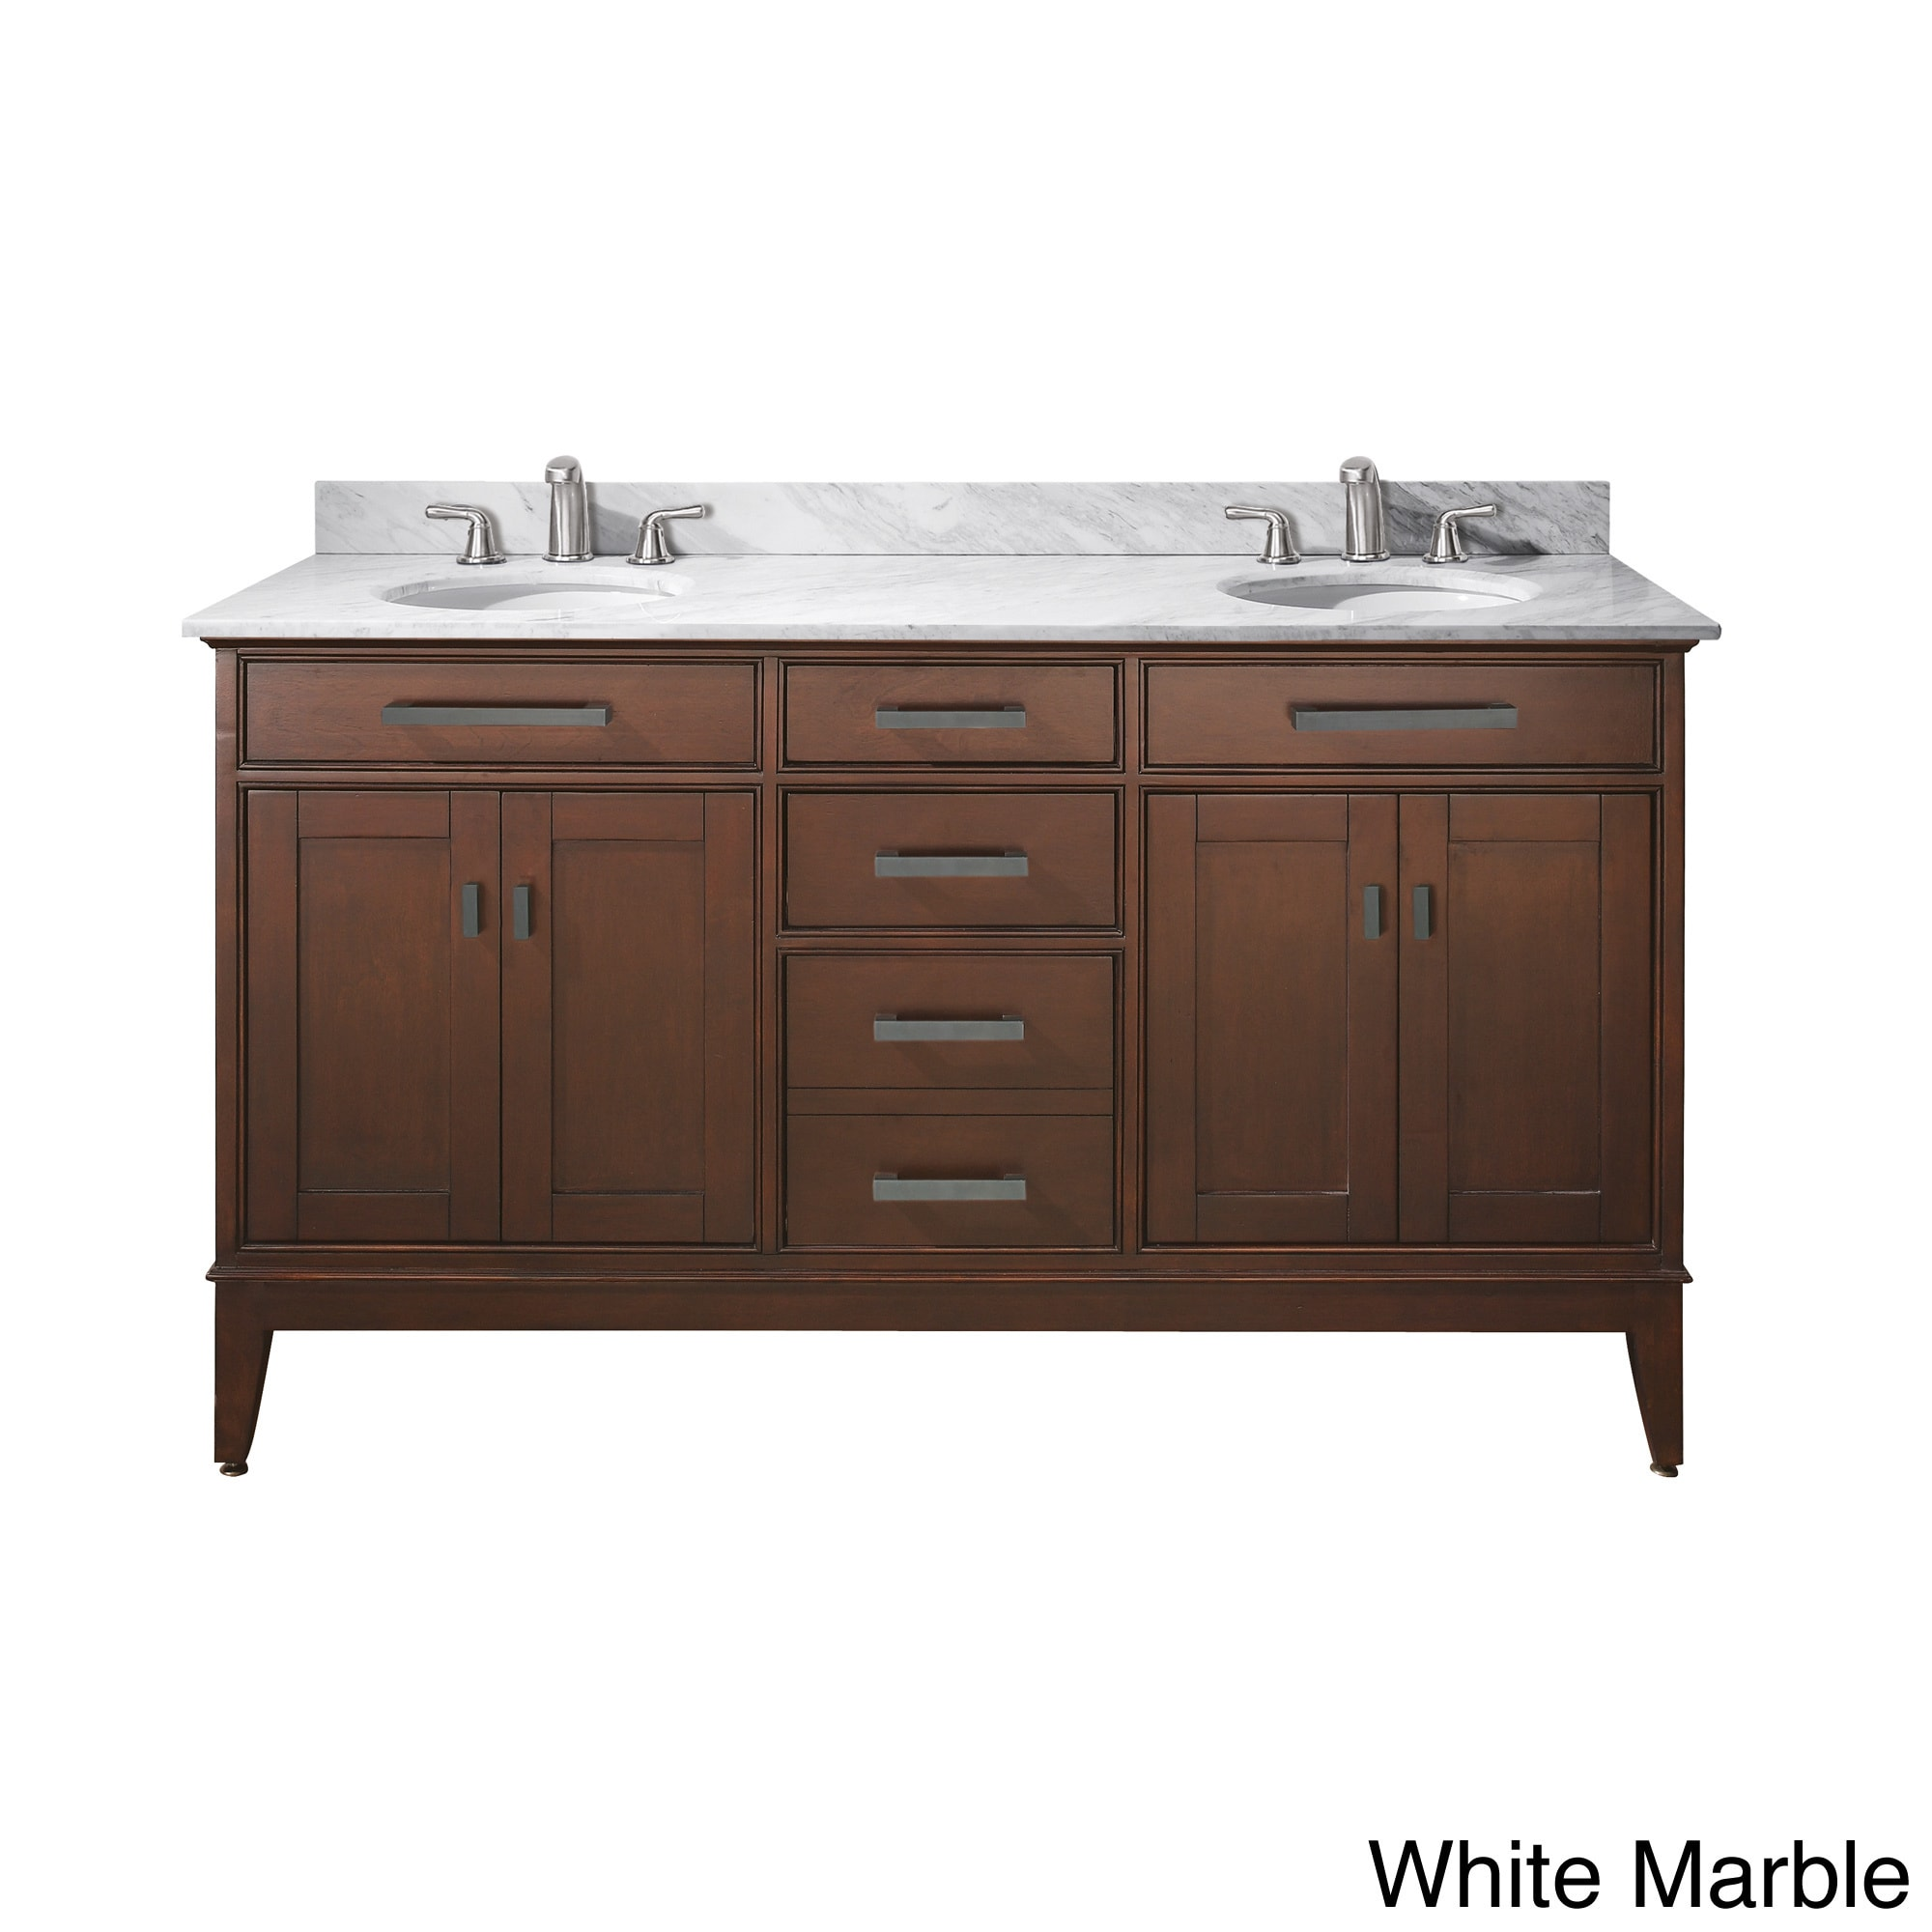 Avanity Madison 60 Inch Double Vanity In Finish With Dual Sinks And Top Free Shipping Today 8930029